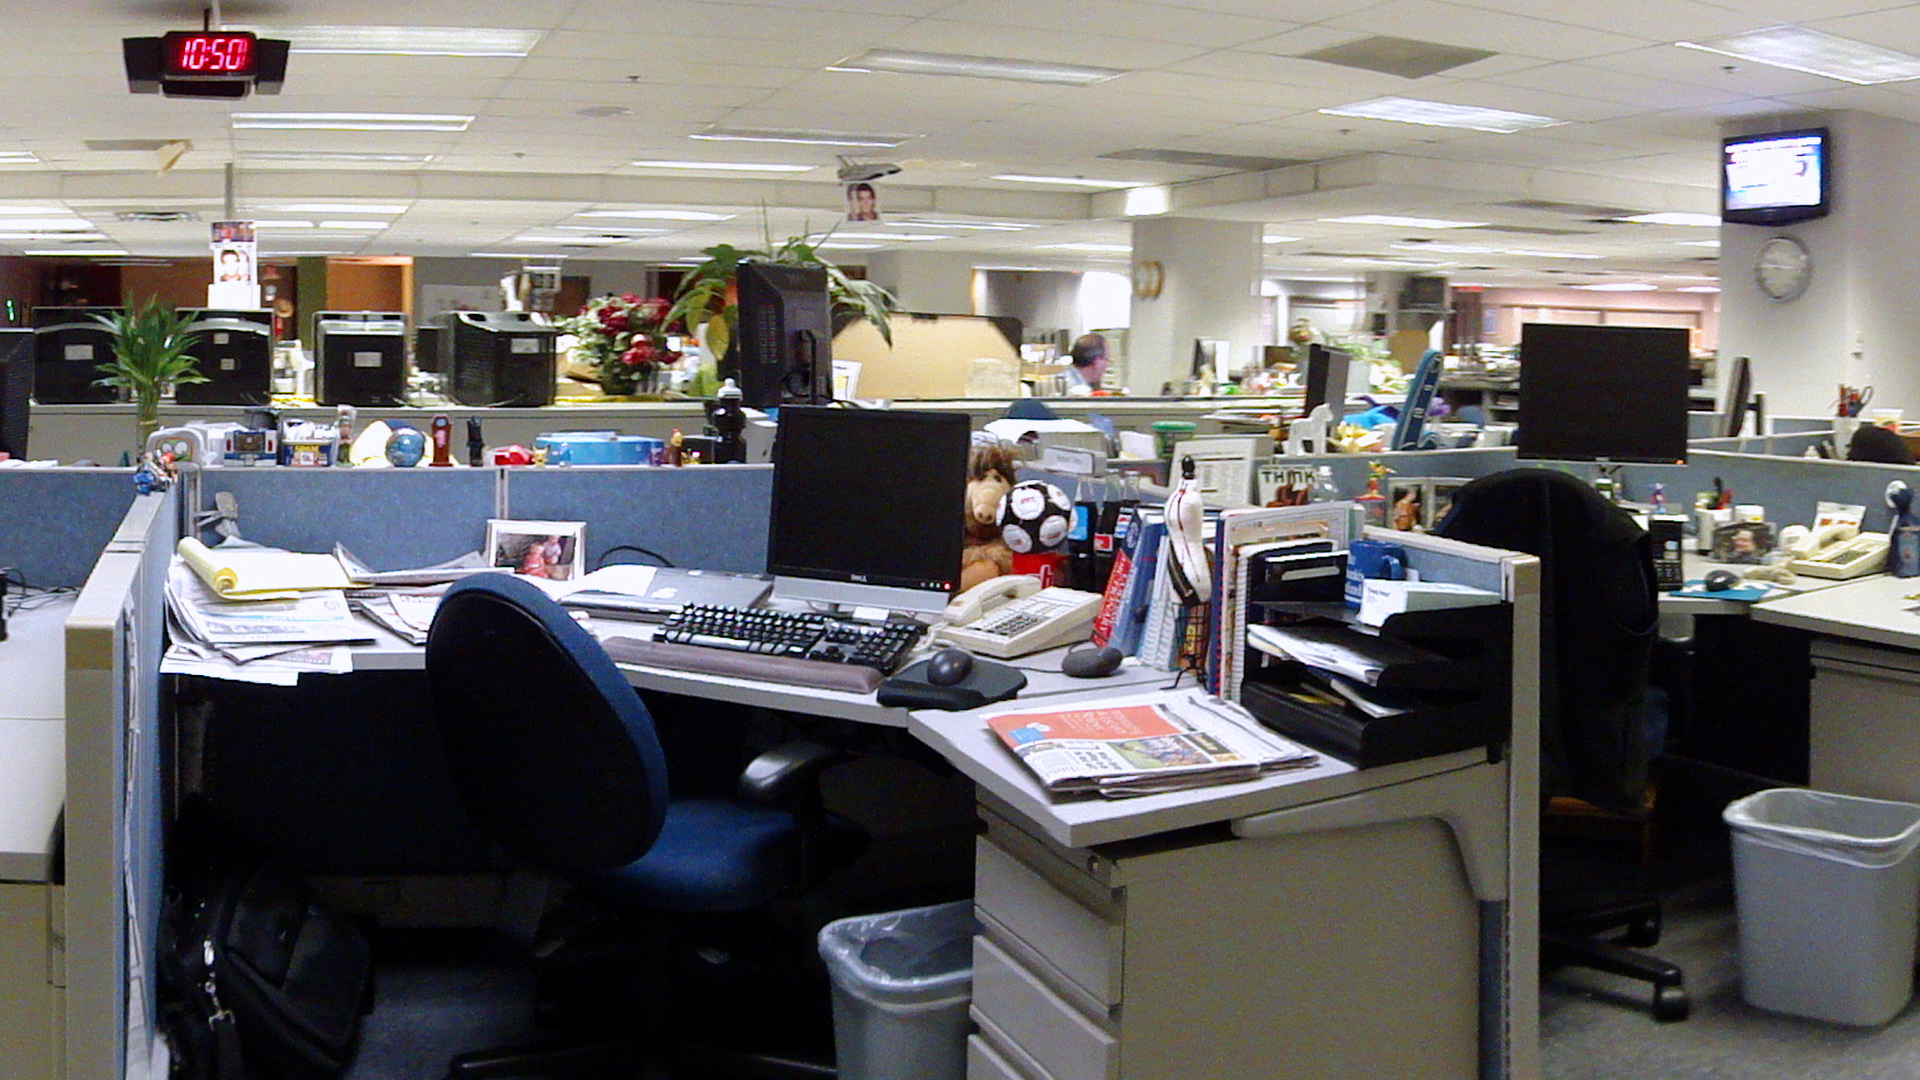 newsroom with cluttered desks but no people